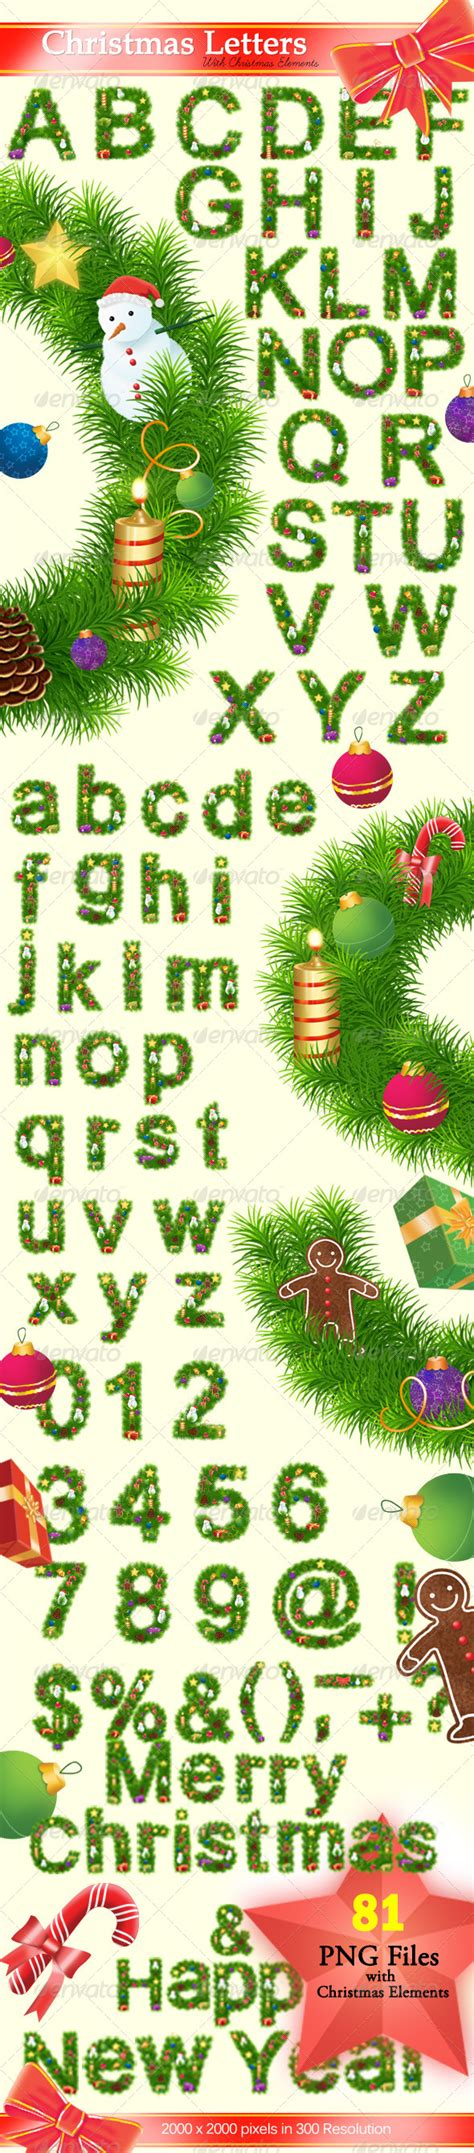 decorative christmas letters letters graphicriver